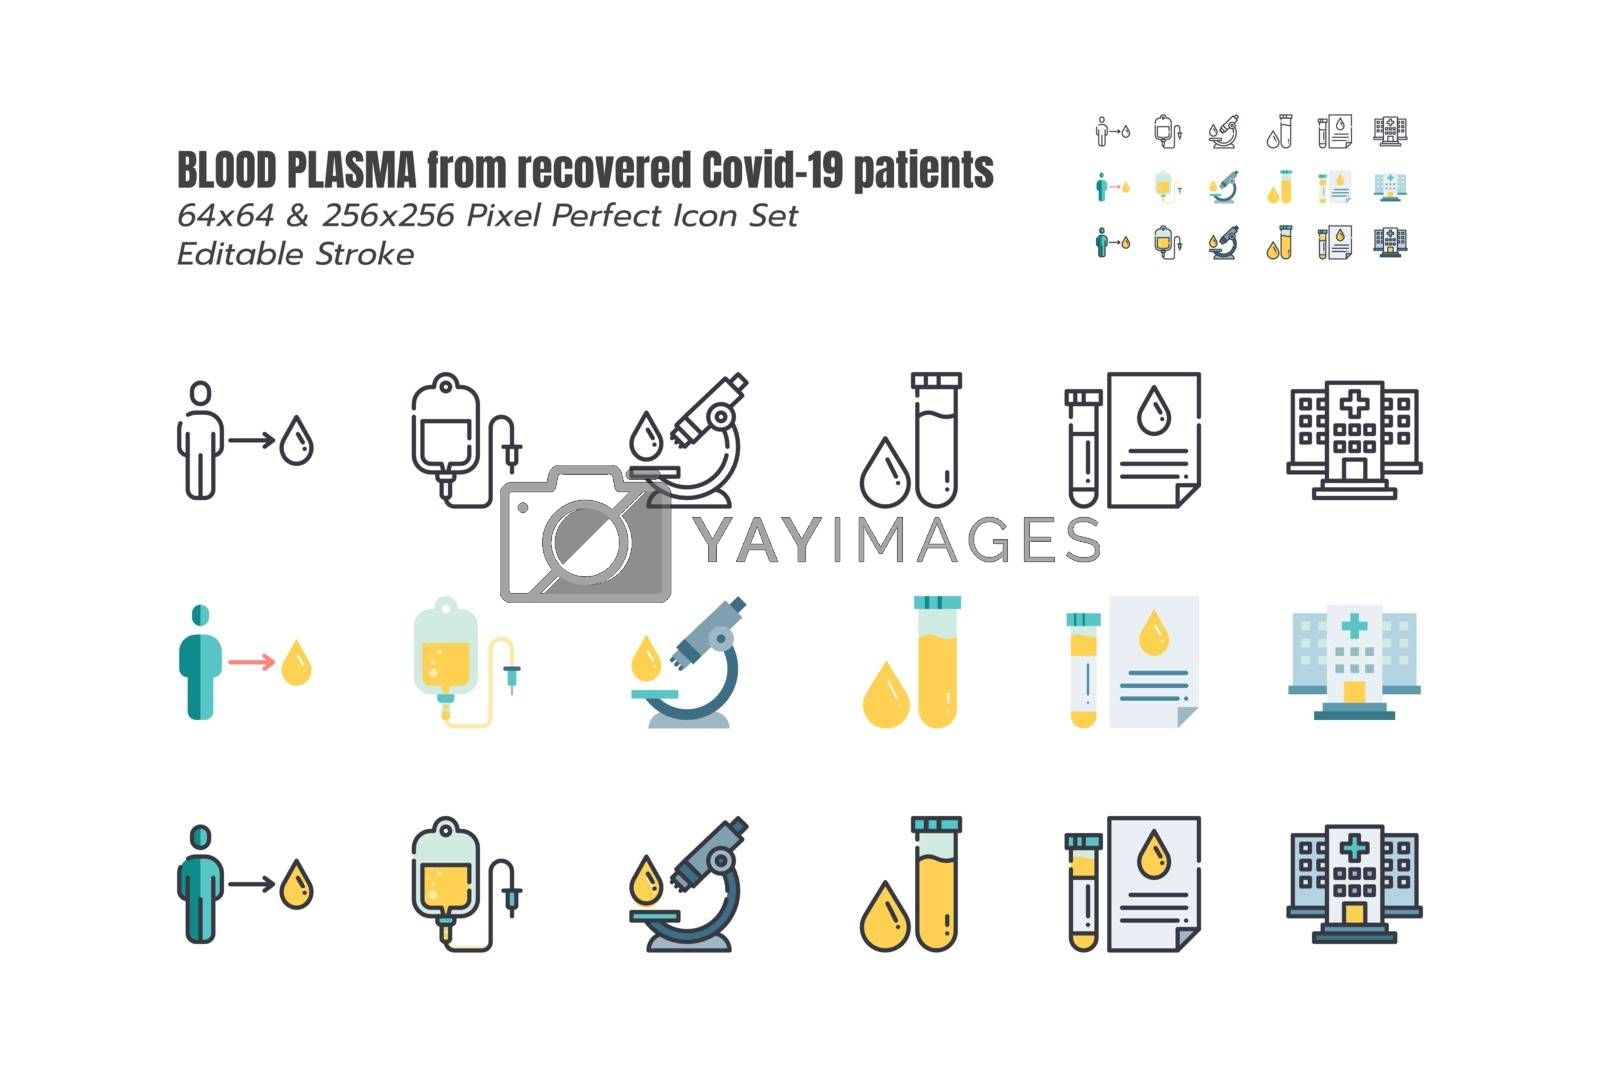 Blood Plasma is being Sought from Recovered Covid-19 Patients. Research to the Coronavirus Disease 2019 Infection Treatments. Line outline, Flat, Filled Icons 64x64 Pixel Perfect Editable Stroke.